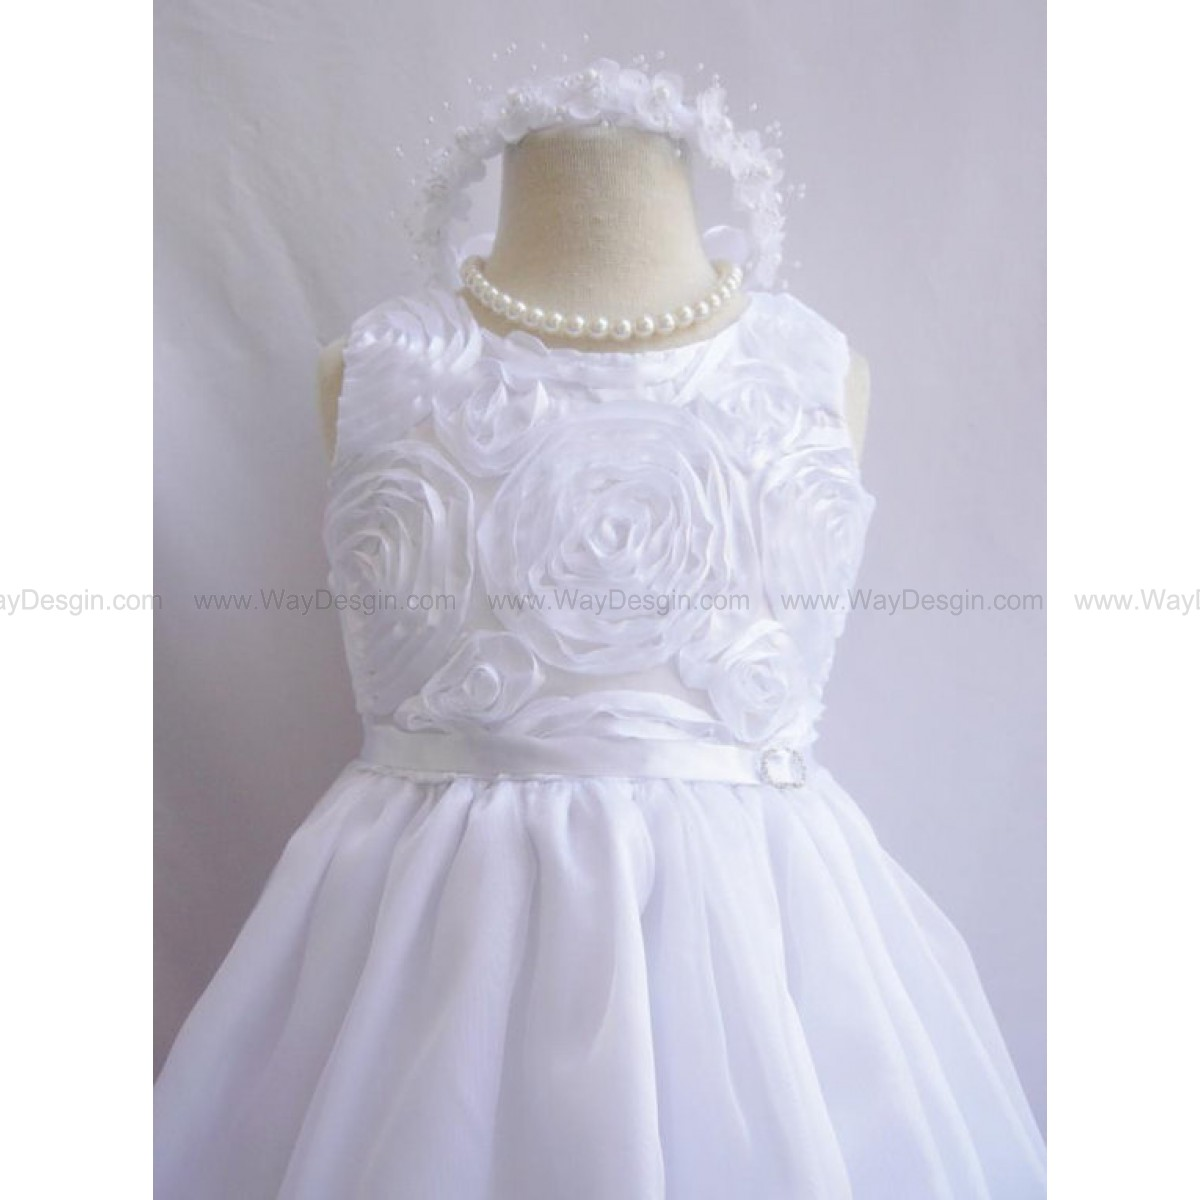 Flower Girl Dress - WHITE Rosette Bodice Dress - Communion, Easter, Junior Bridesmaid, Wedding - From Toddler to Teen